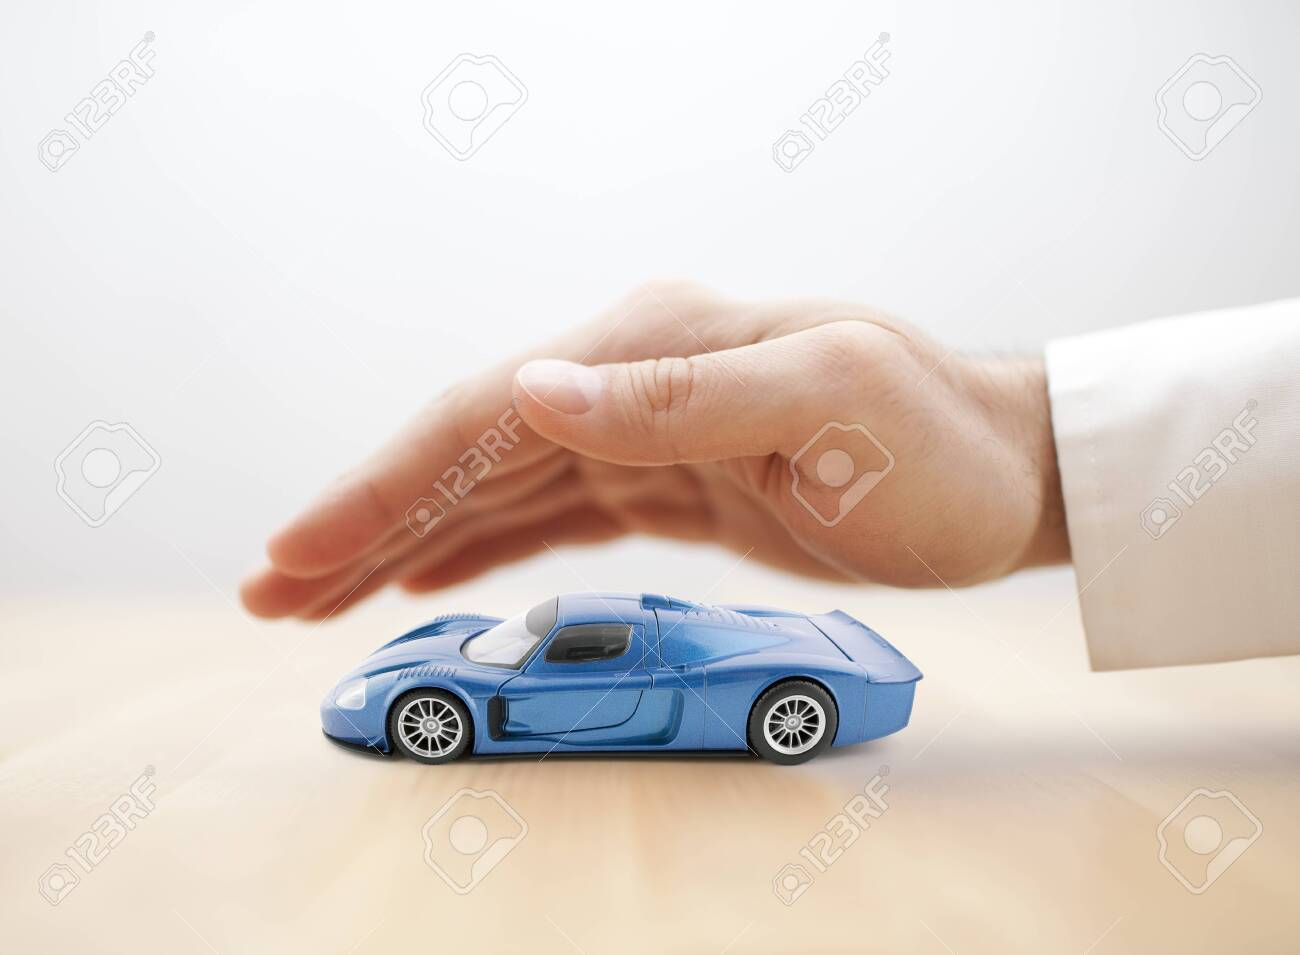 Car insurance concept with blue car toy covered by hand - 123611461